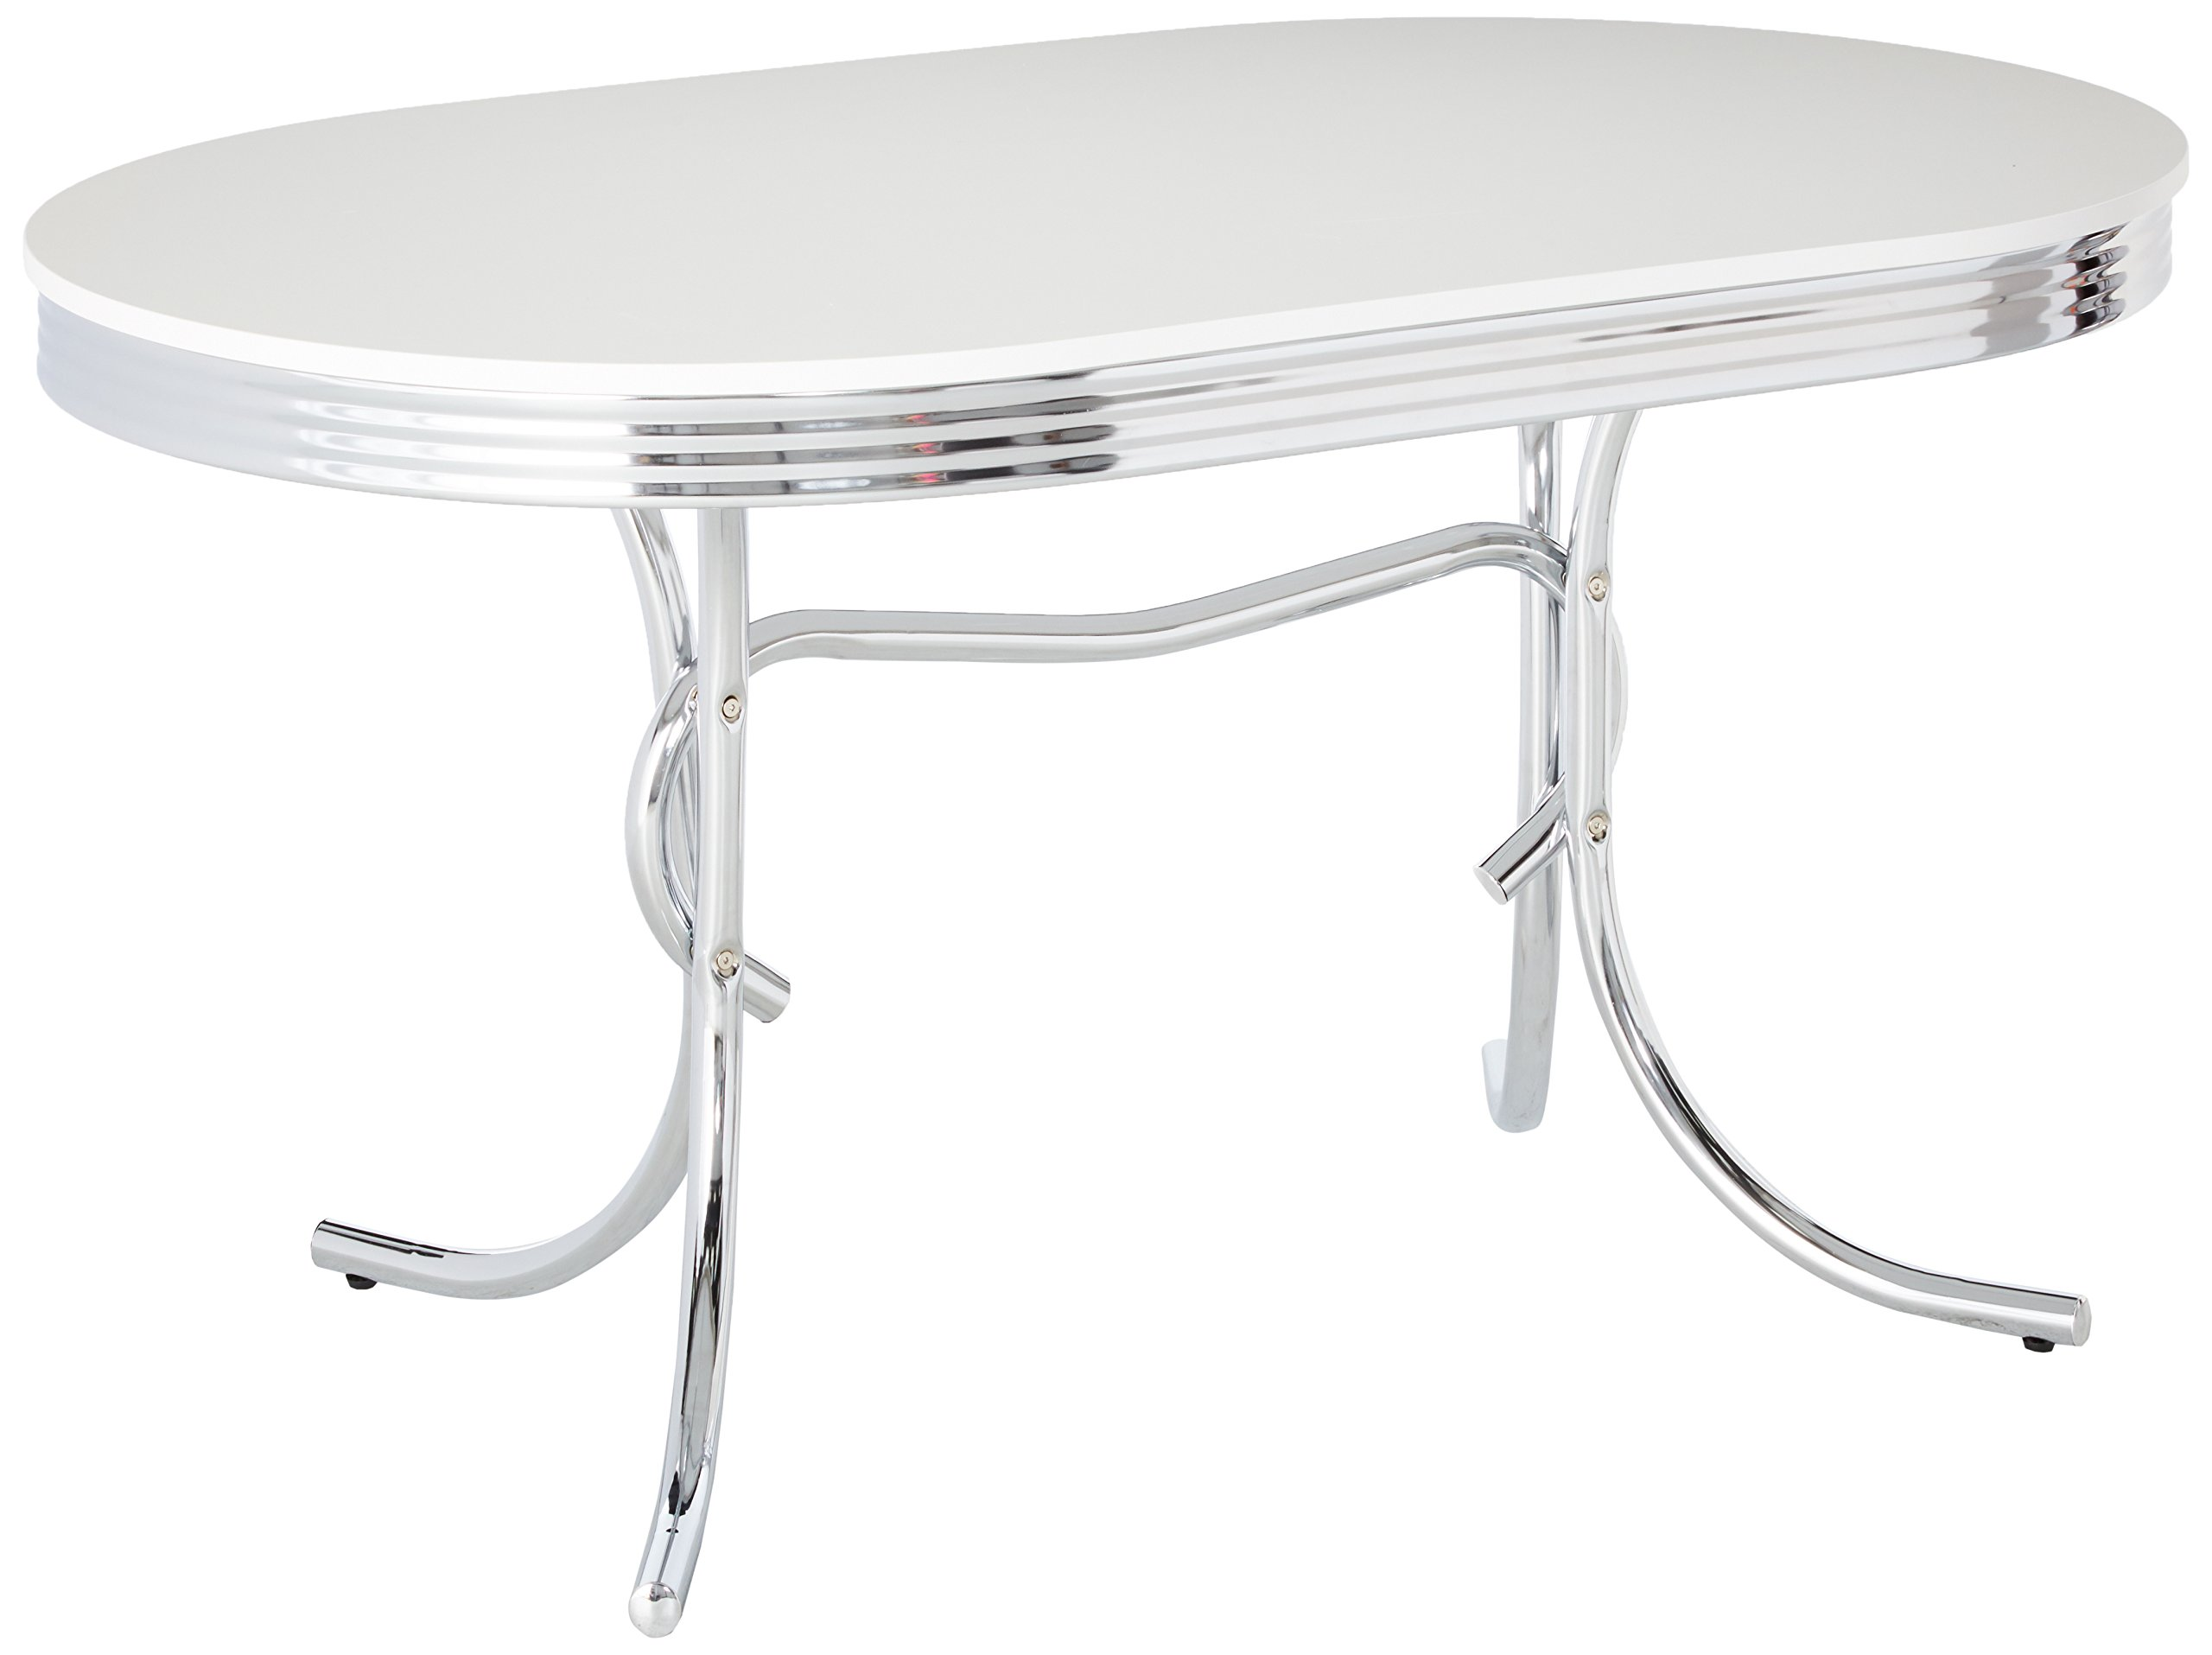 Retro Oval Dining Table White and Chrome by Coaster Home Furnishings